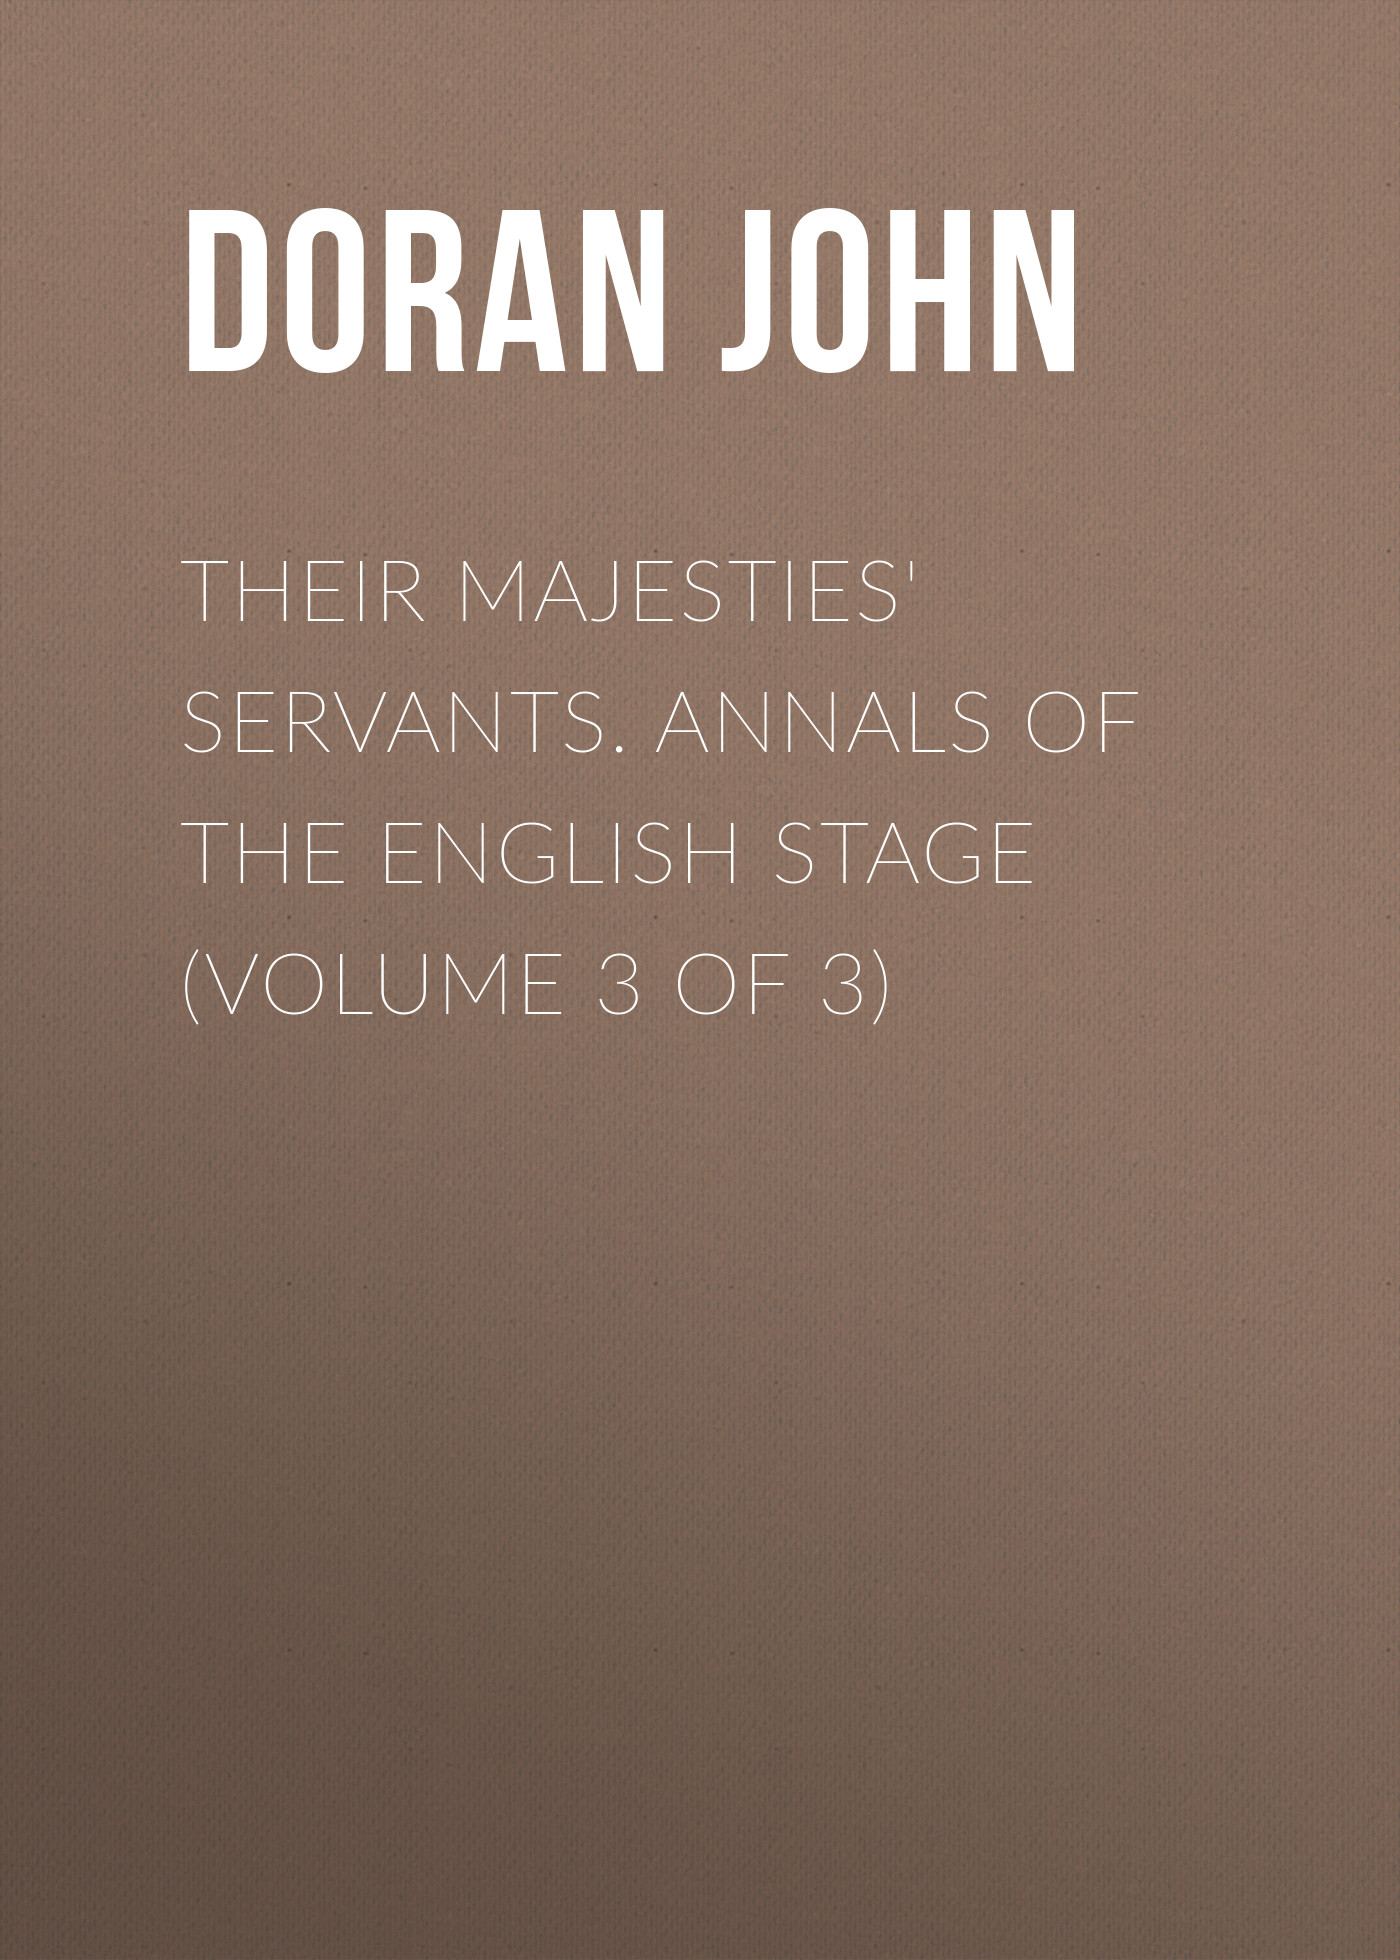 лучшая цена Doran John Their Majesties' Servants. Annals of the English Stage (Volume 3 of 3)